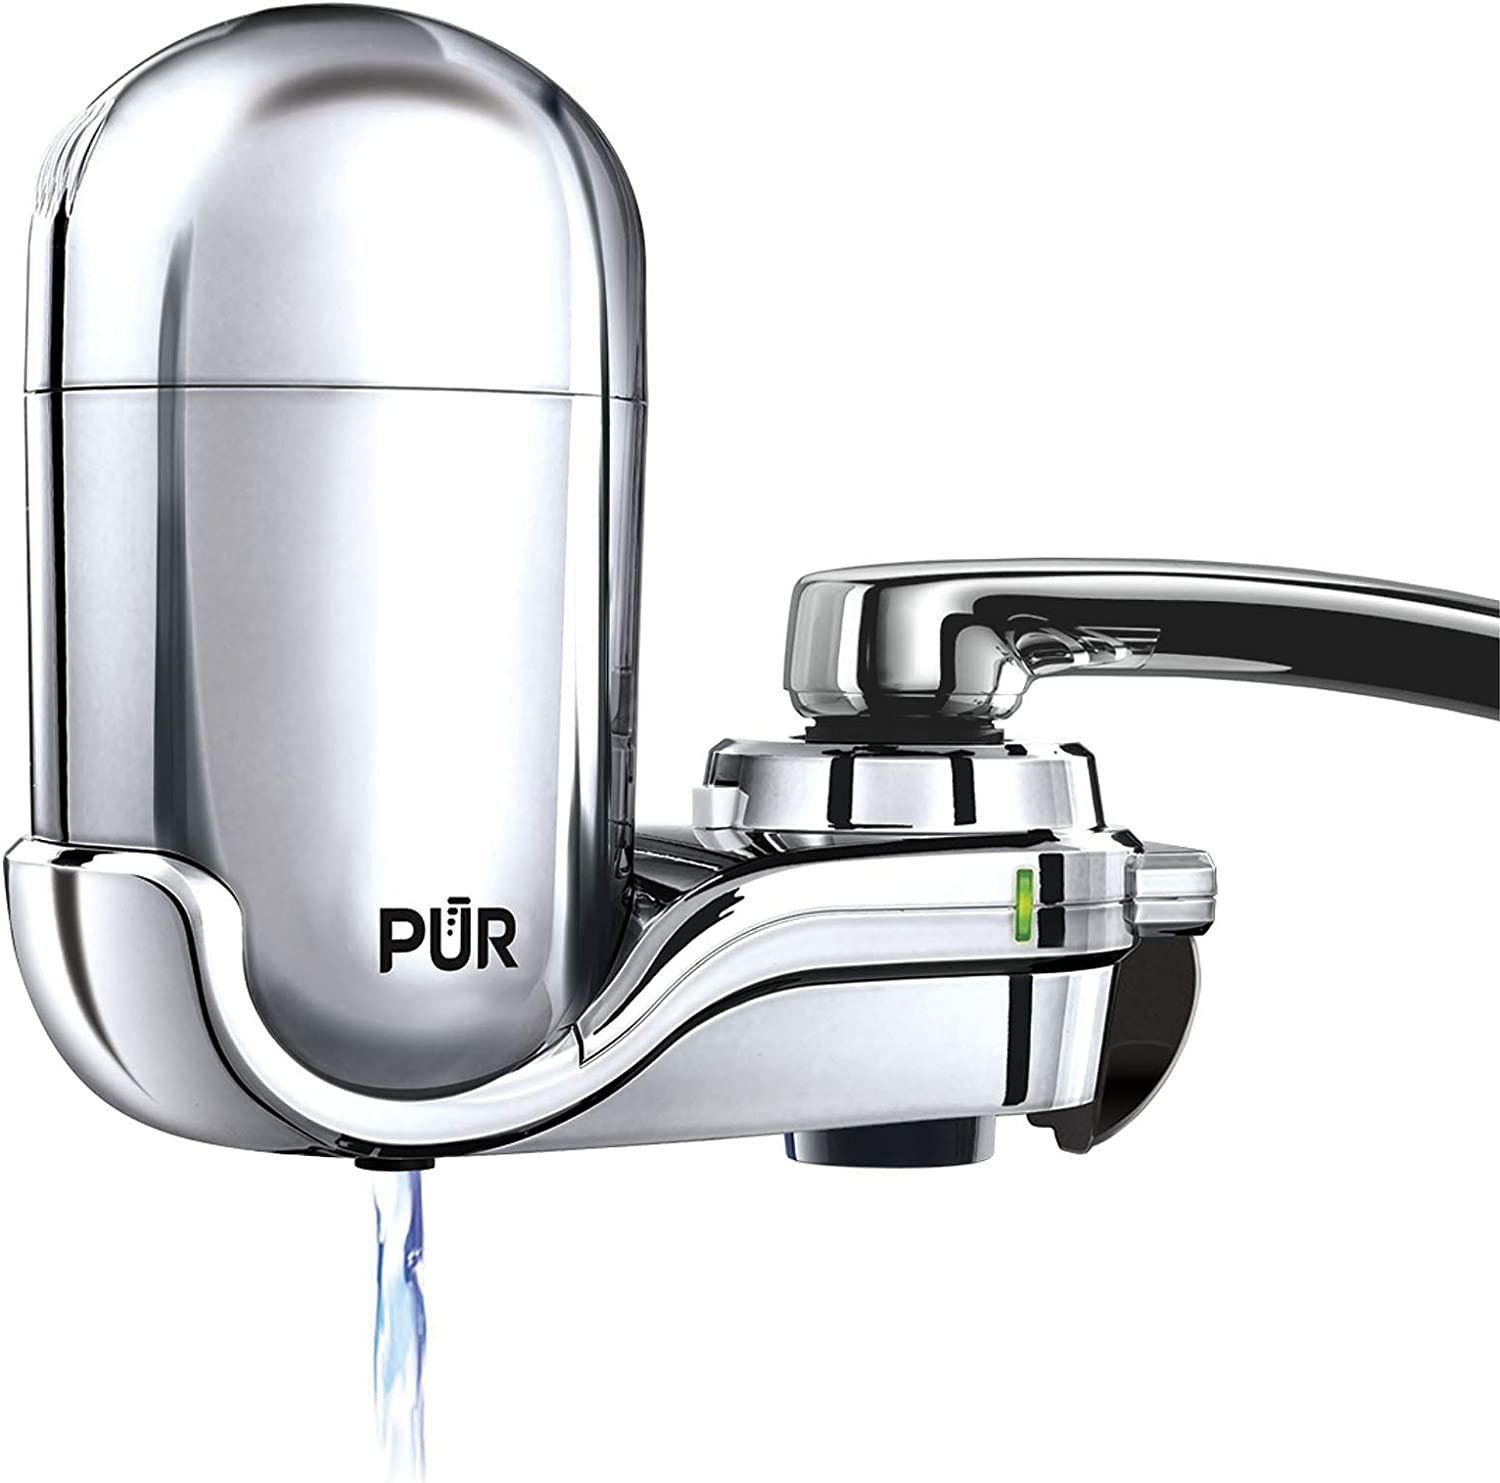 PUR – FM-3700 Faucet Mount Water Filter Reviews